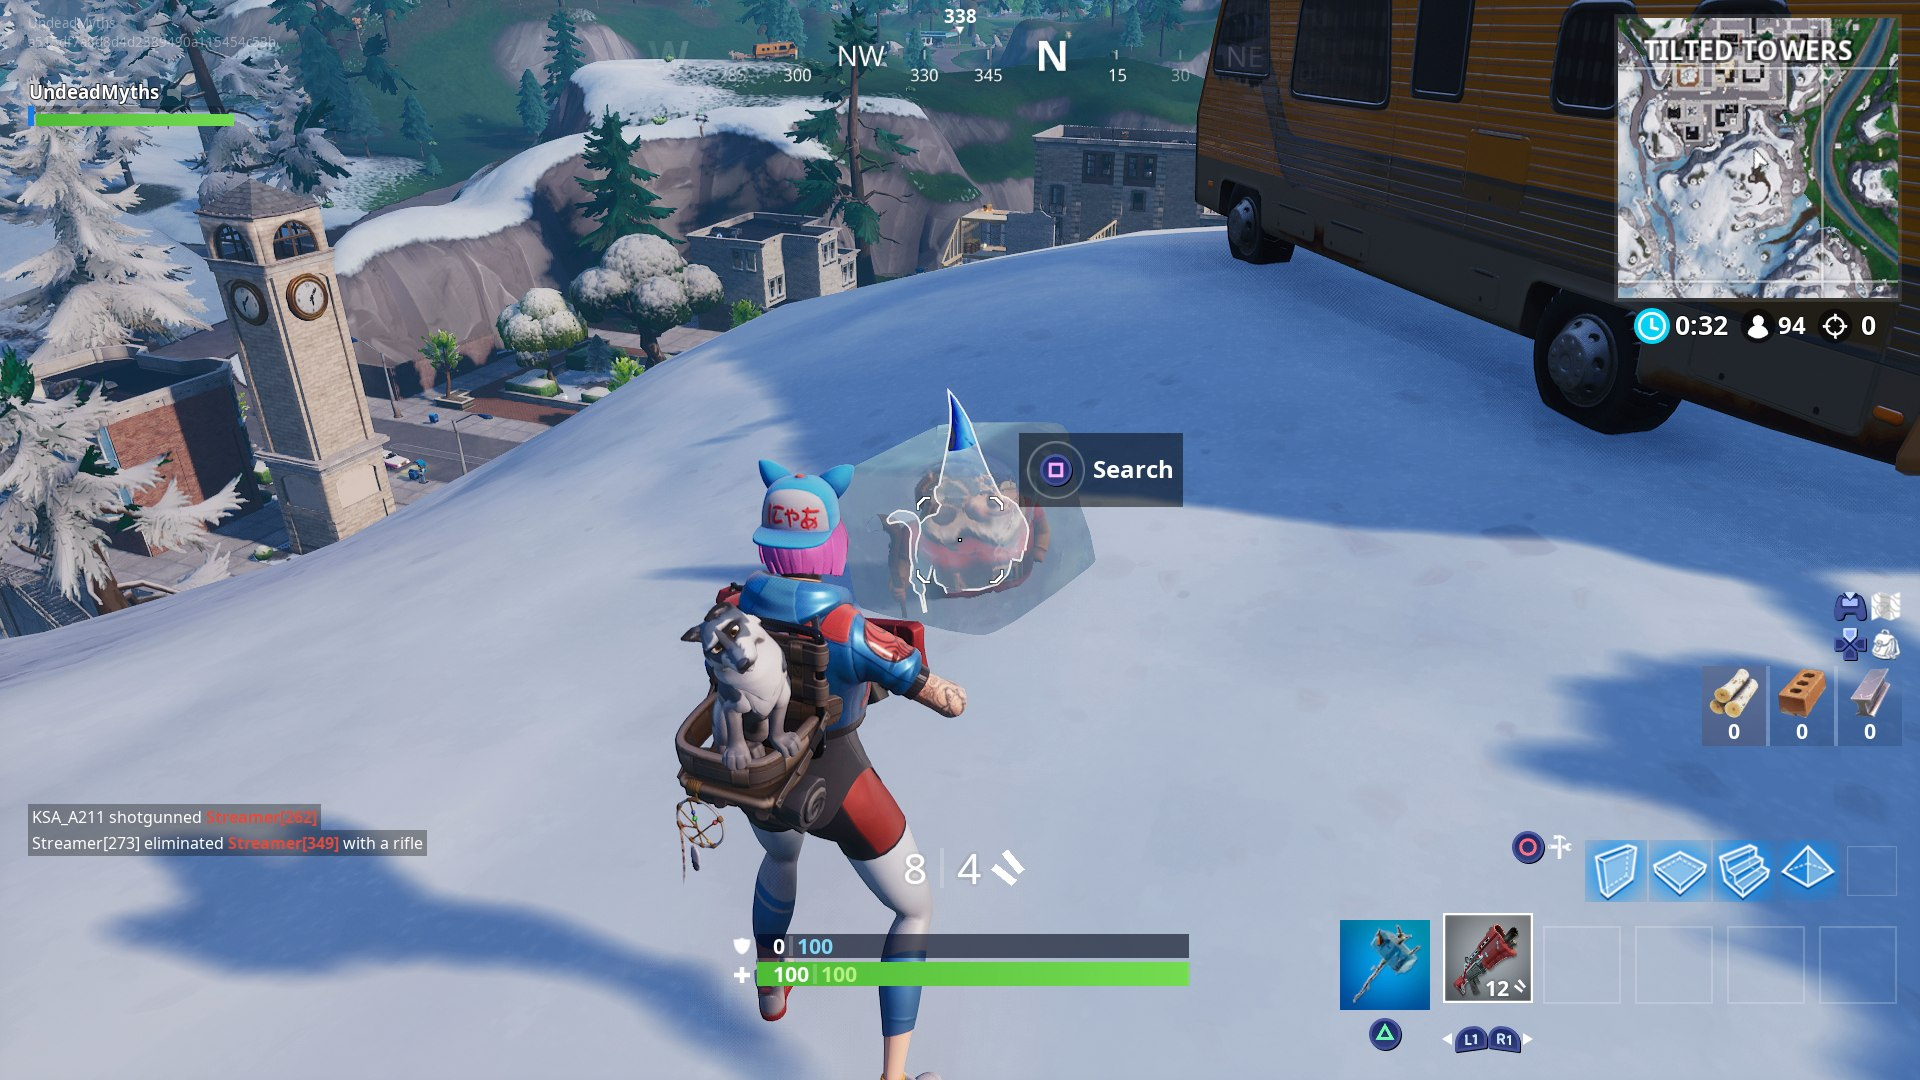 Fortnite Chilly Gnome Locations Where To Search Chilly Gnomes In